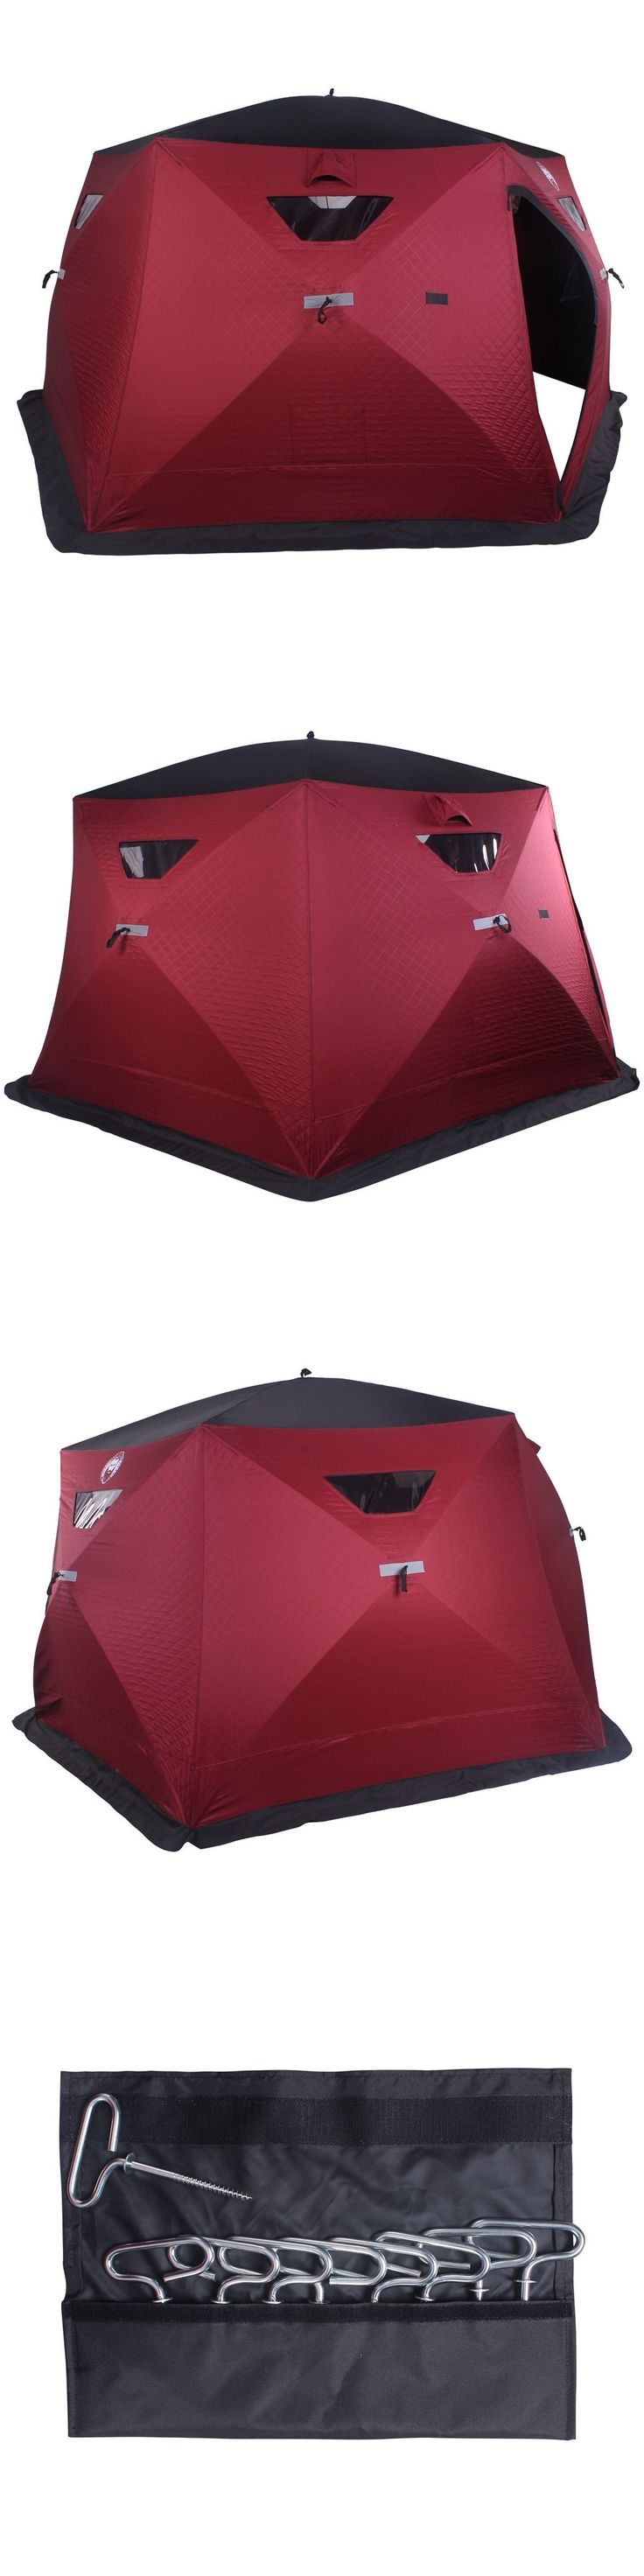 Tents and Shelters 72670: New! Nordic Legend Hex-Hub 6 To 8 Man Thermal Ice Shelter BUY IT NOW ONLY: $379.99